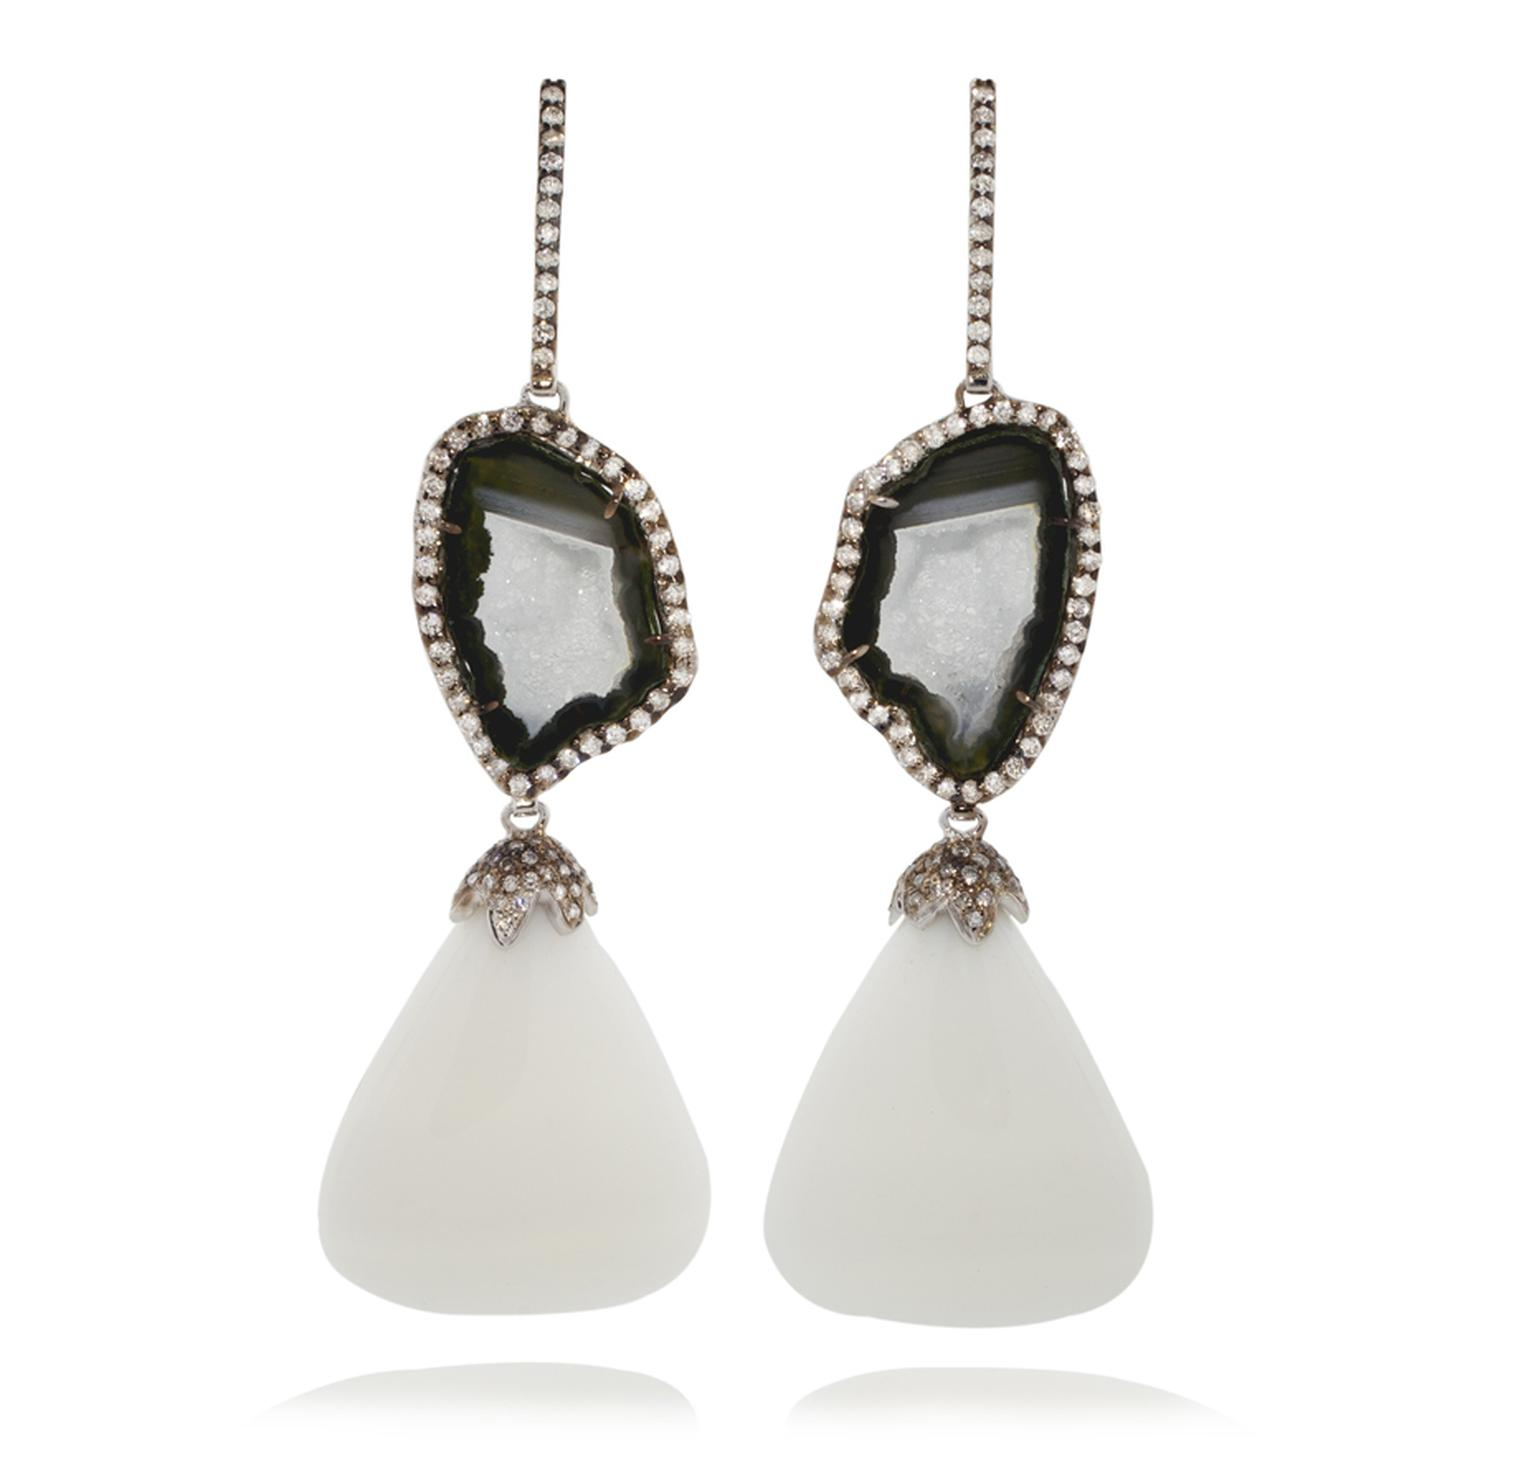 Kimberly McDonald geode earrings.